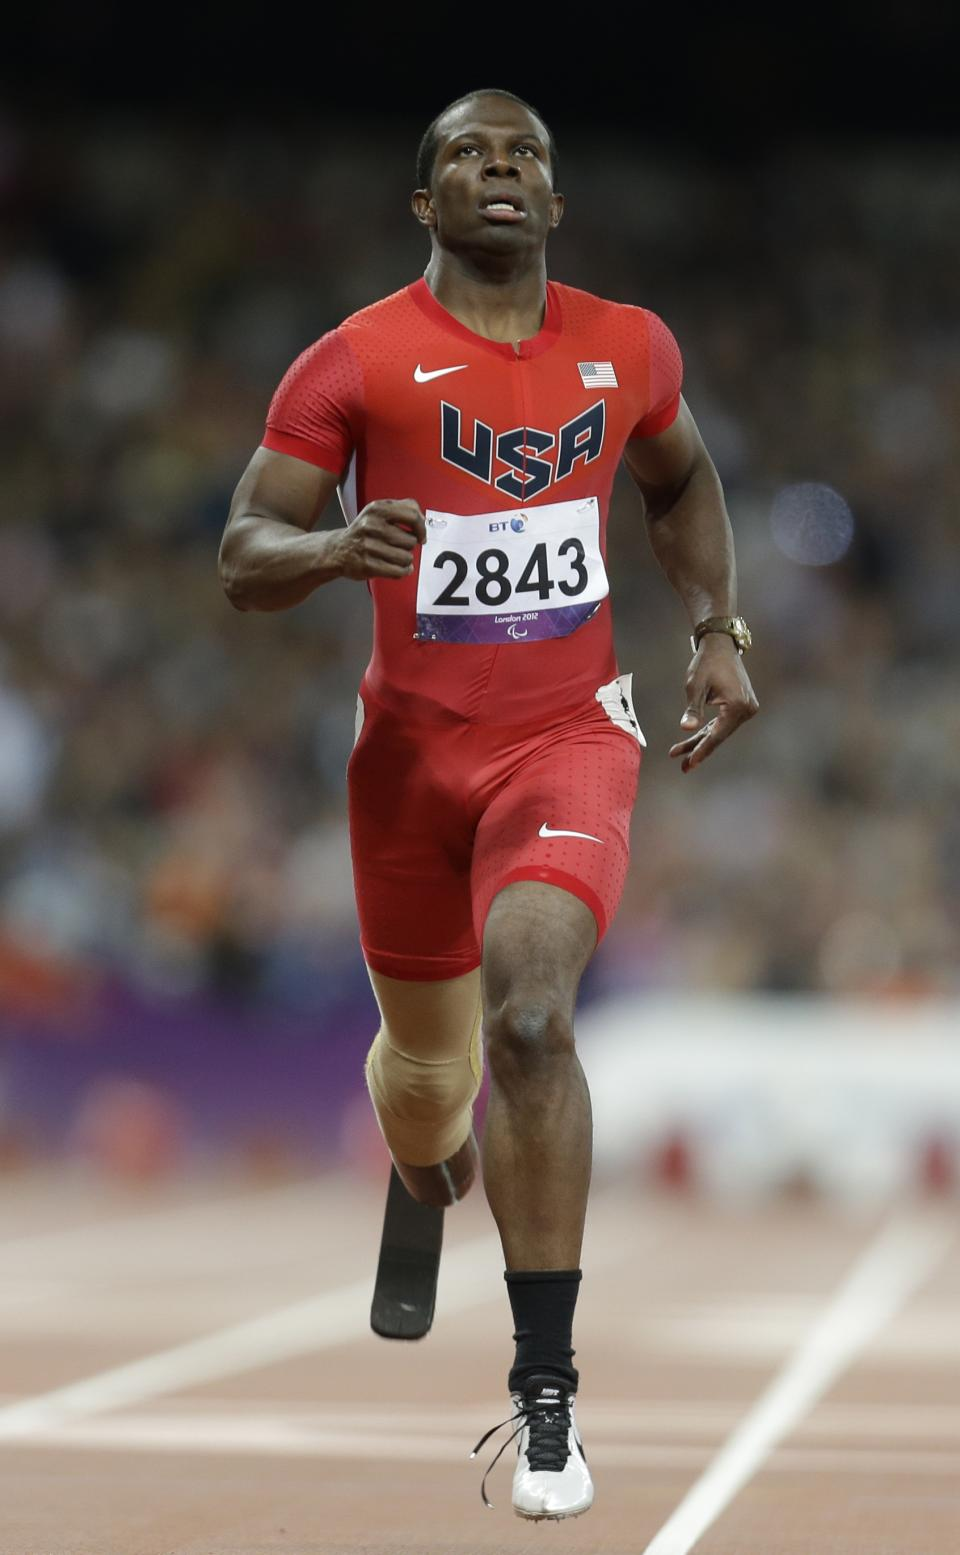 United States' Jerome Singleton competes at a men's 200m T44 round 1 race at the 2012 Paralympics in London, Saturday, Sept. 1, 2012. (AP Photo/Lefteris Pitarakis)